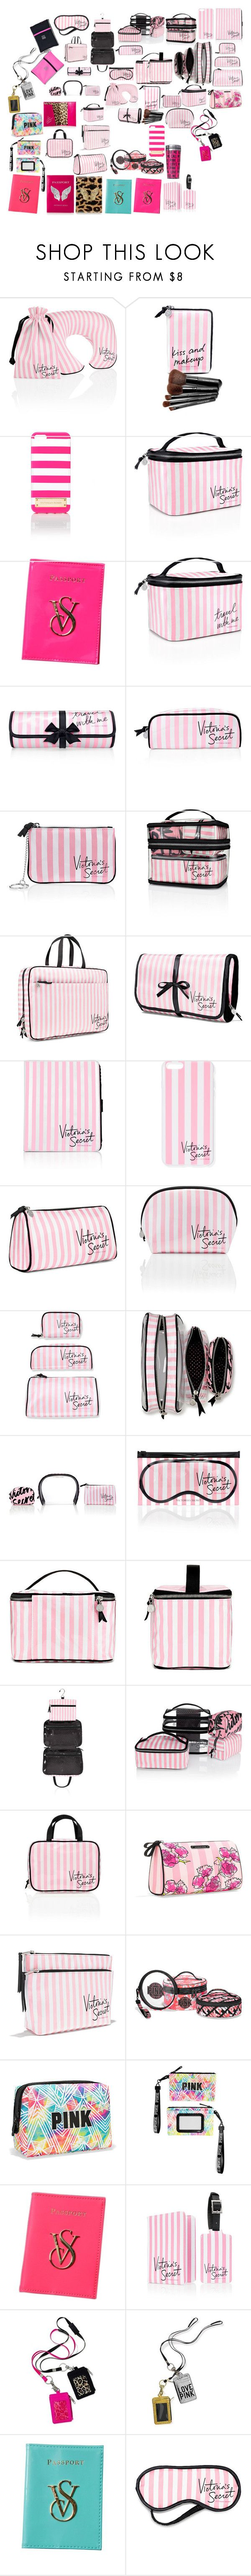 """VS PINK"" by angelbrubisc ❤ liked on Polyvore featuring beauty, Victoria's Secret, Beauty Rush and Passport"